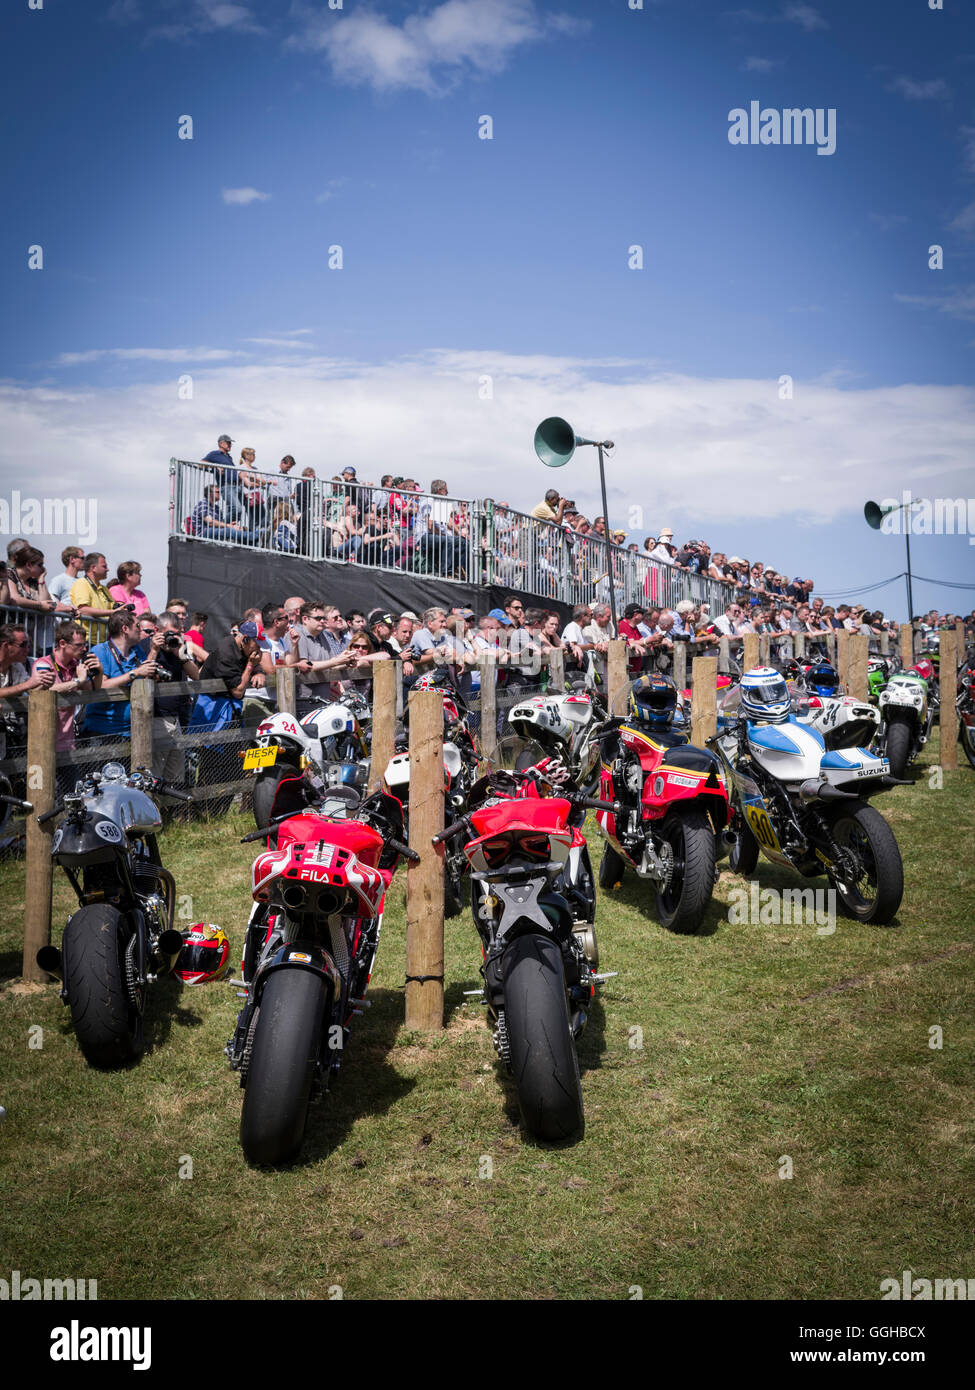 Naples Car Show 2018 >> Top Motorcycle Stock Photos & Top Motorcycle Stock Images - Alamy